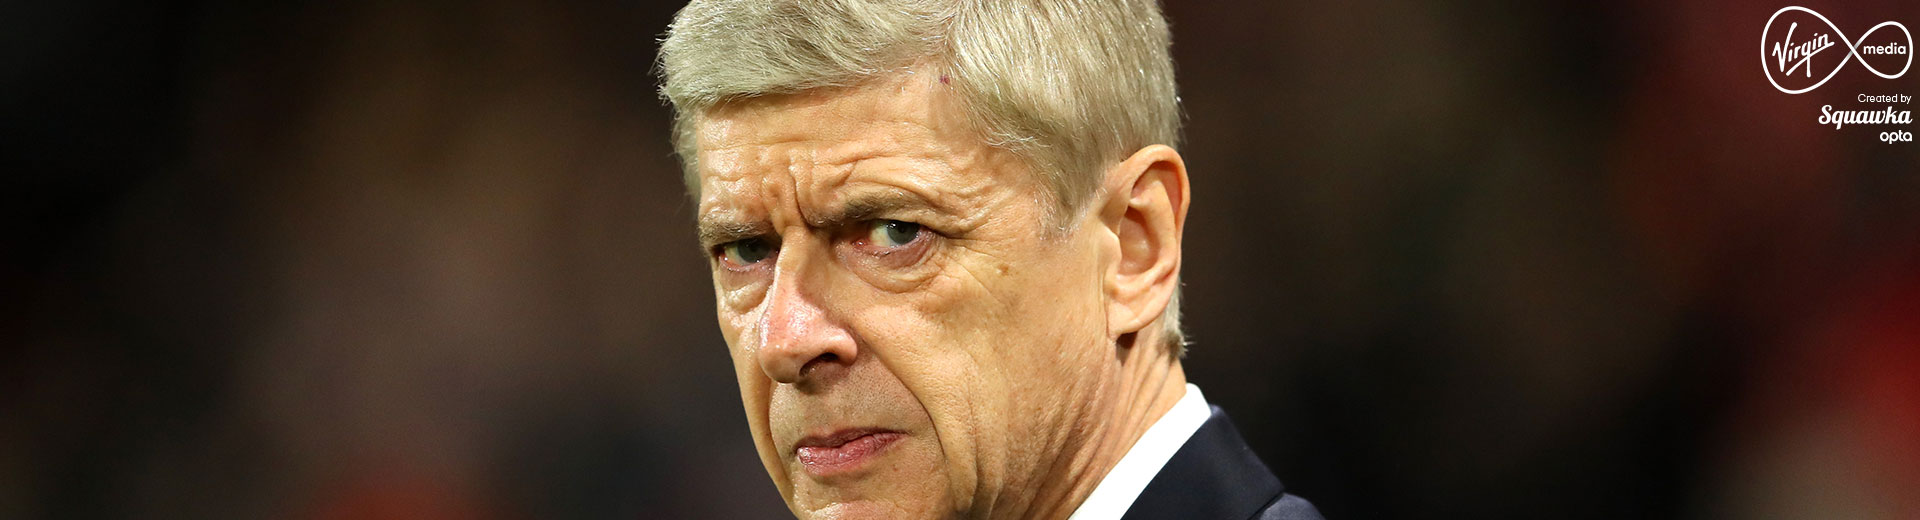 Wenger In or Out